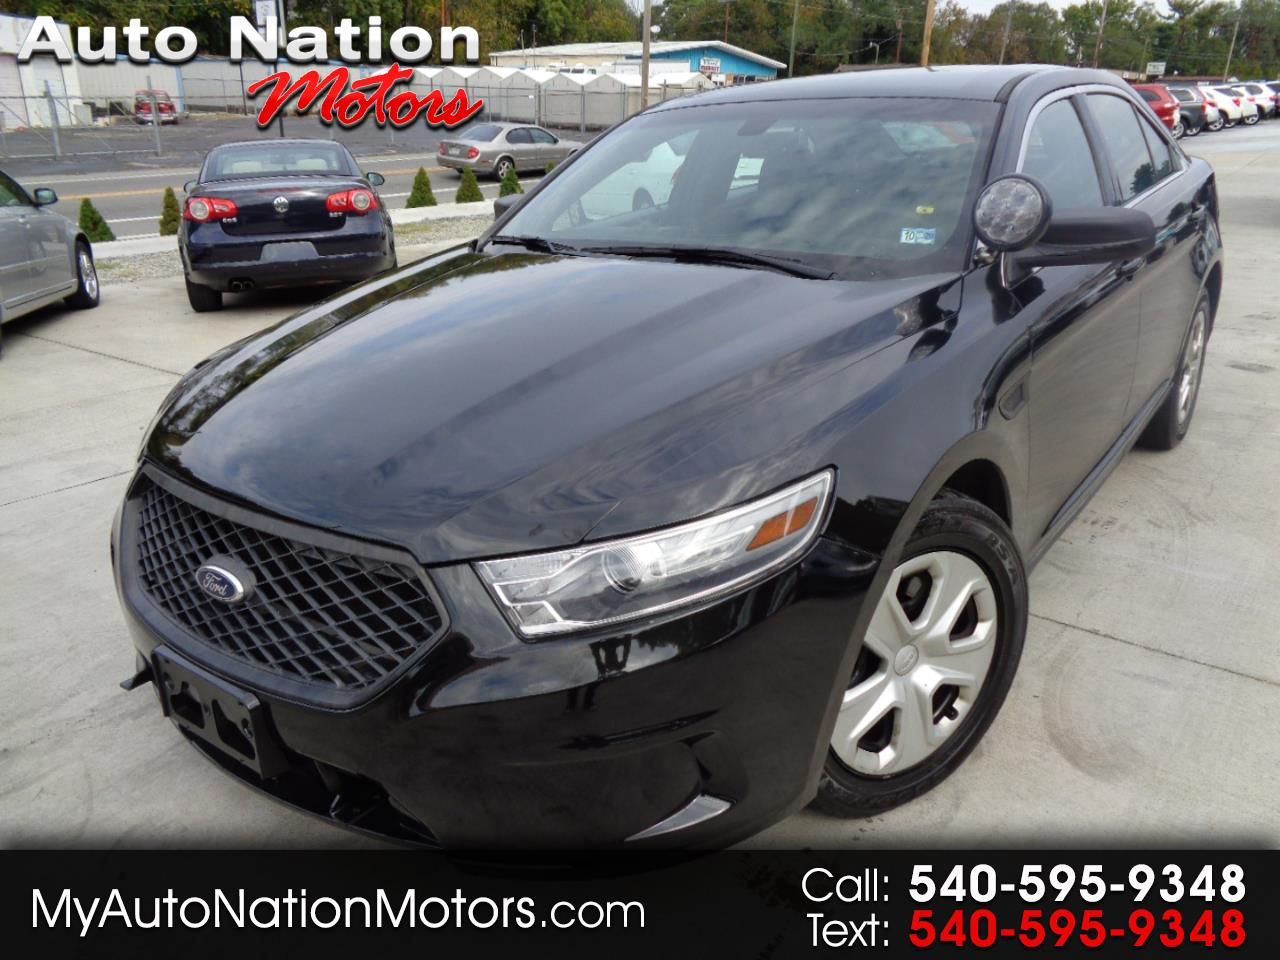 Ford Sedan Police Interceptor 4dr Sdn AWD 2013